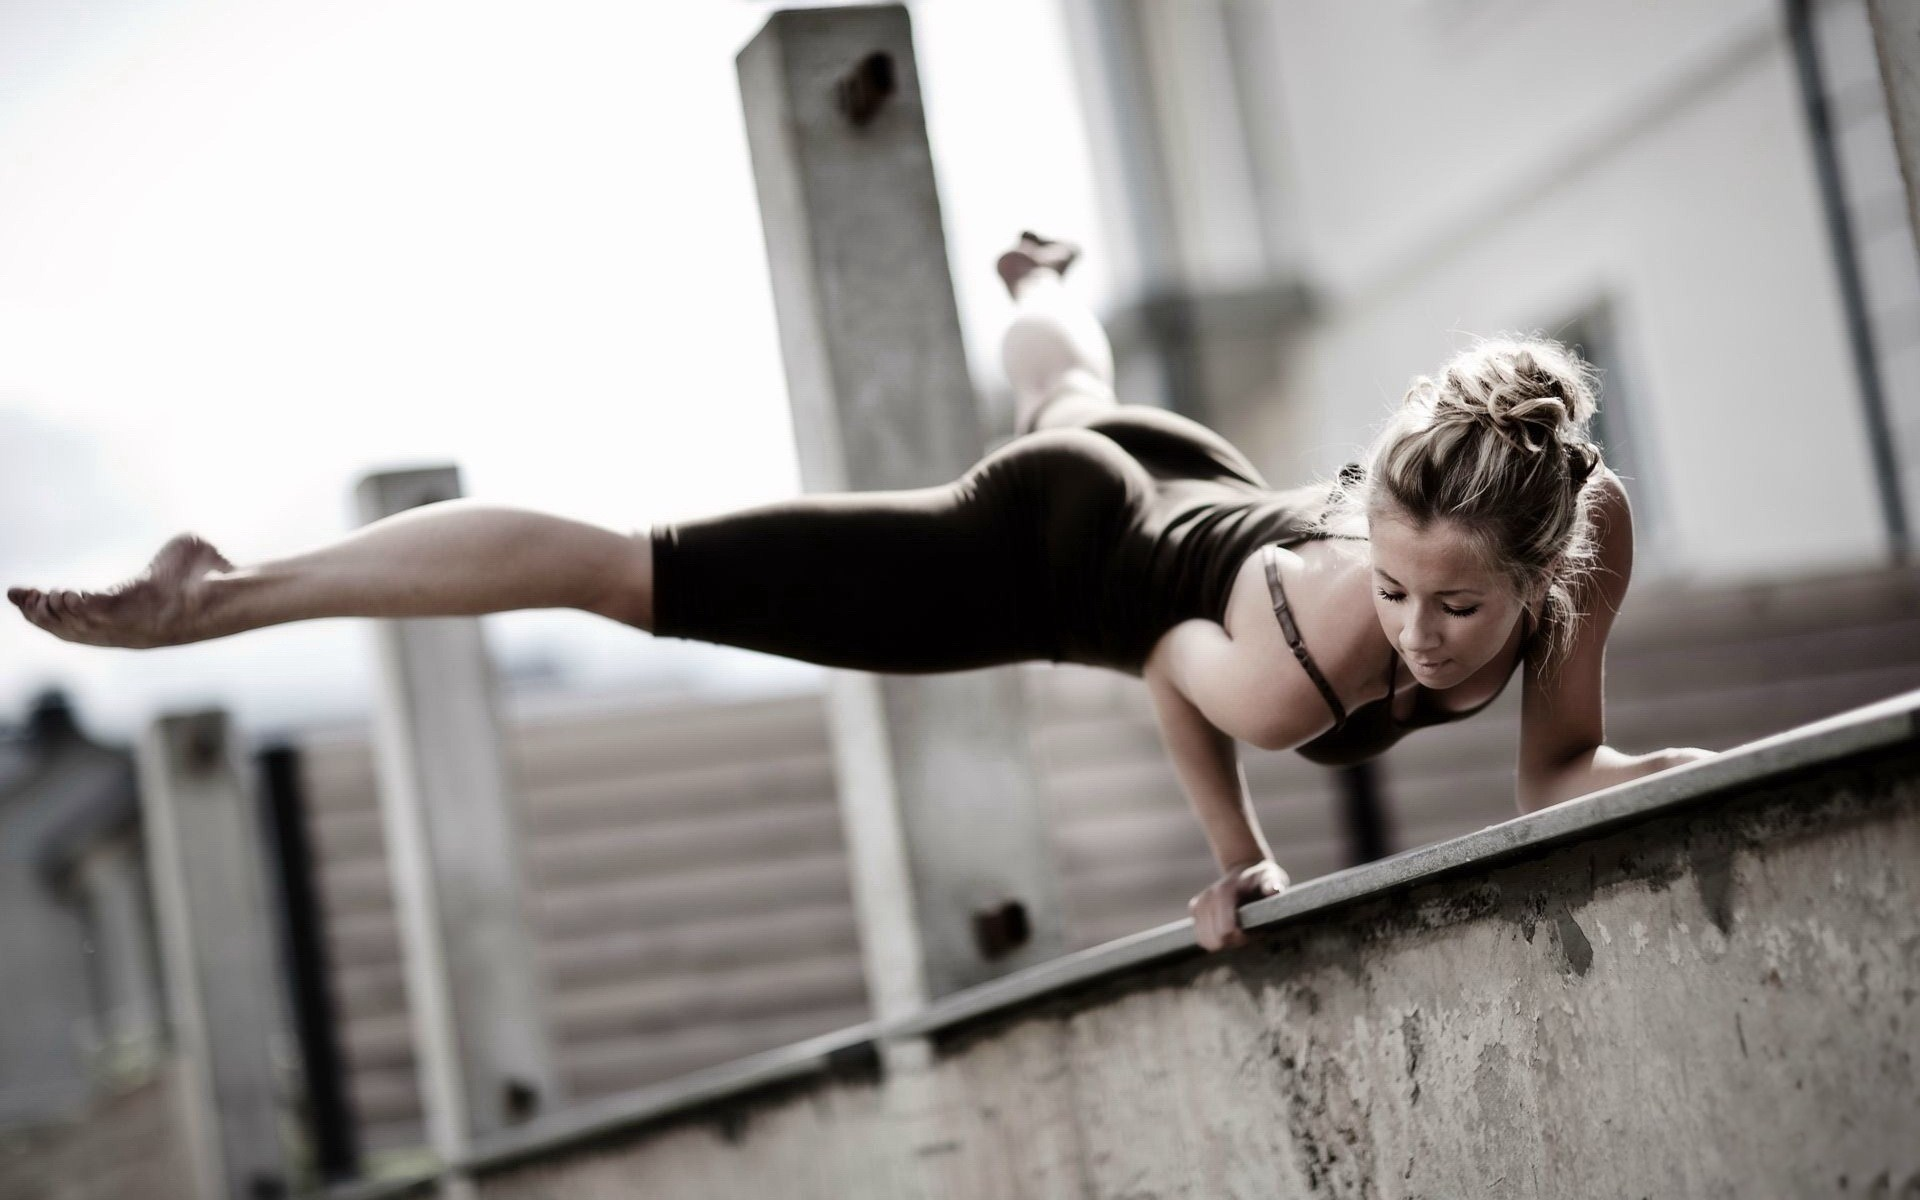 Girl Athlete Fitness Workout Strength Sport